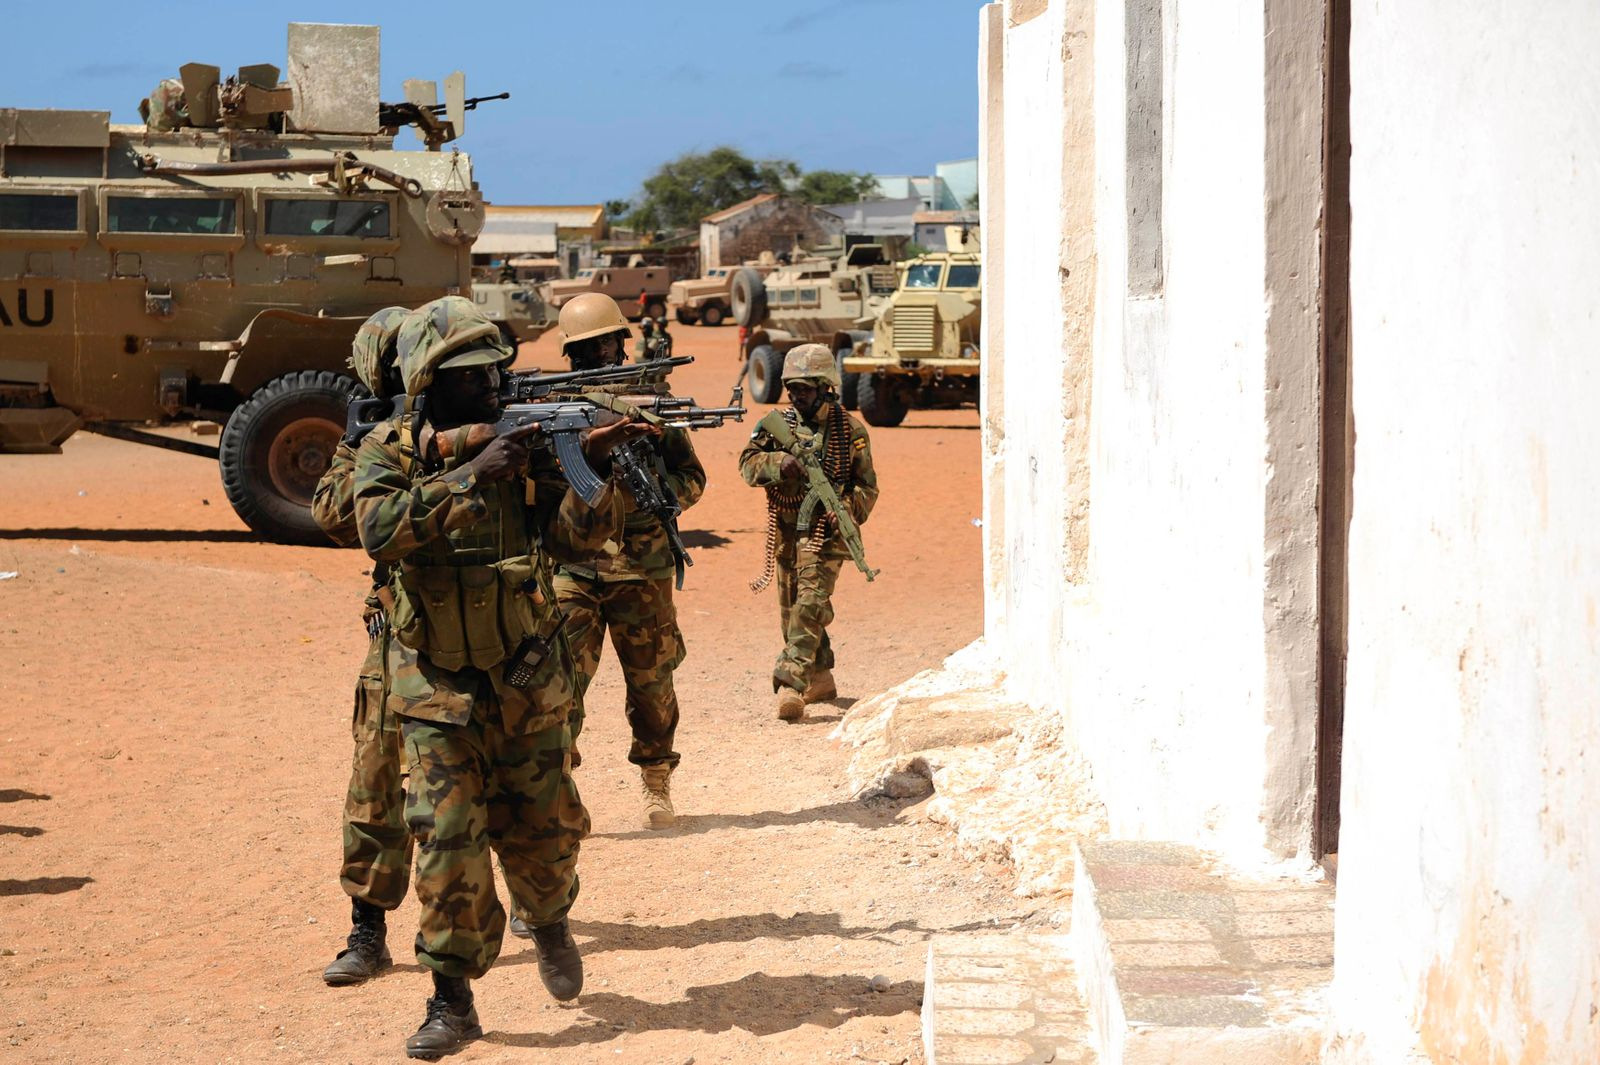 Members of the Ugandan Special Forces belonging to the African Union Mission in Somalia (AMISOM), take part in an operation to clear a building in the town of Barawe